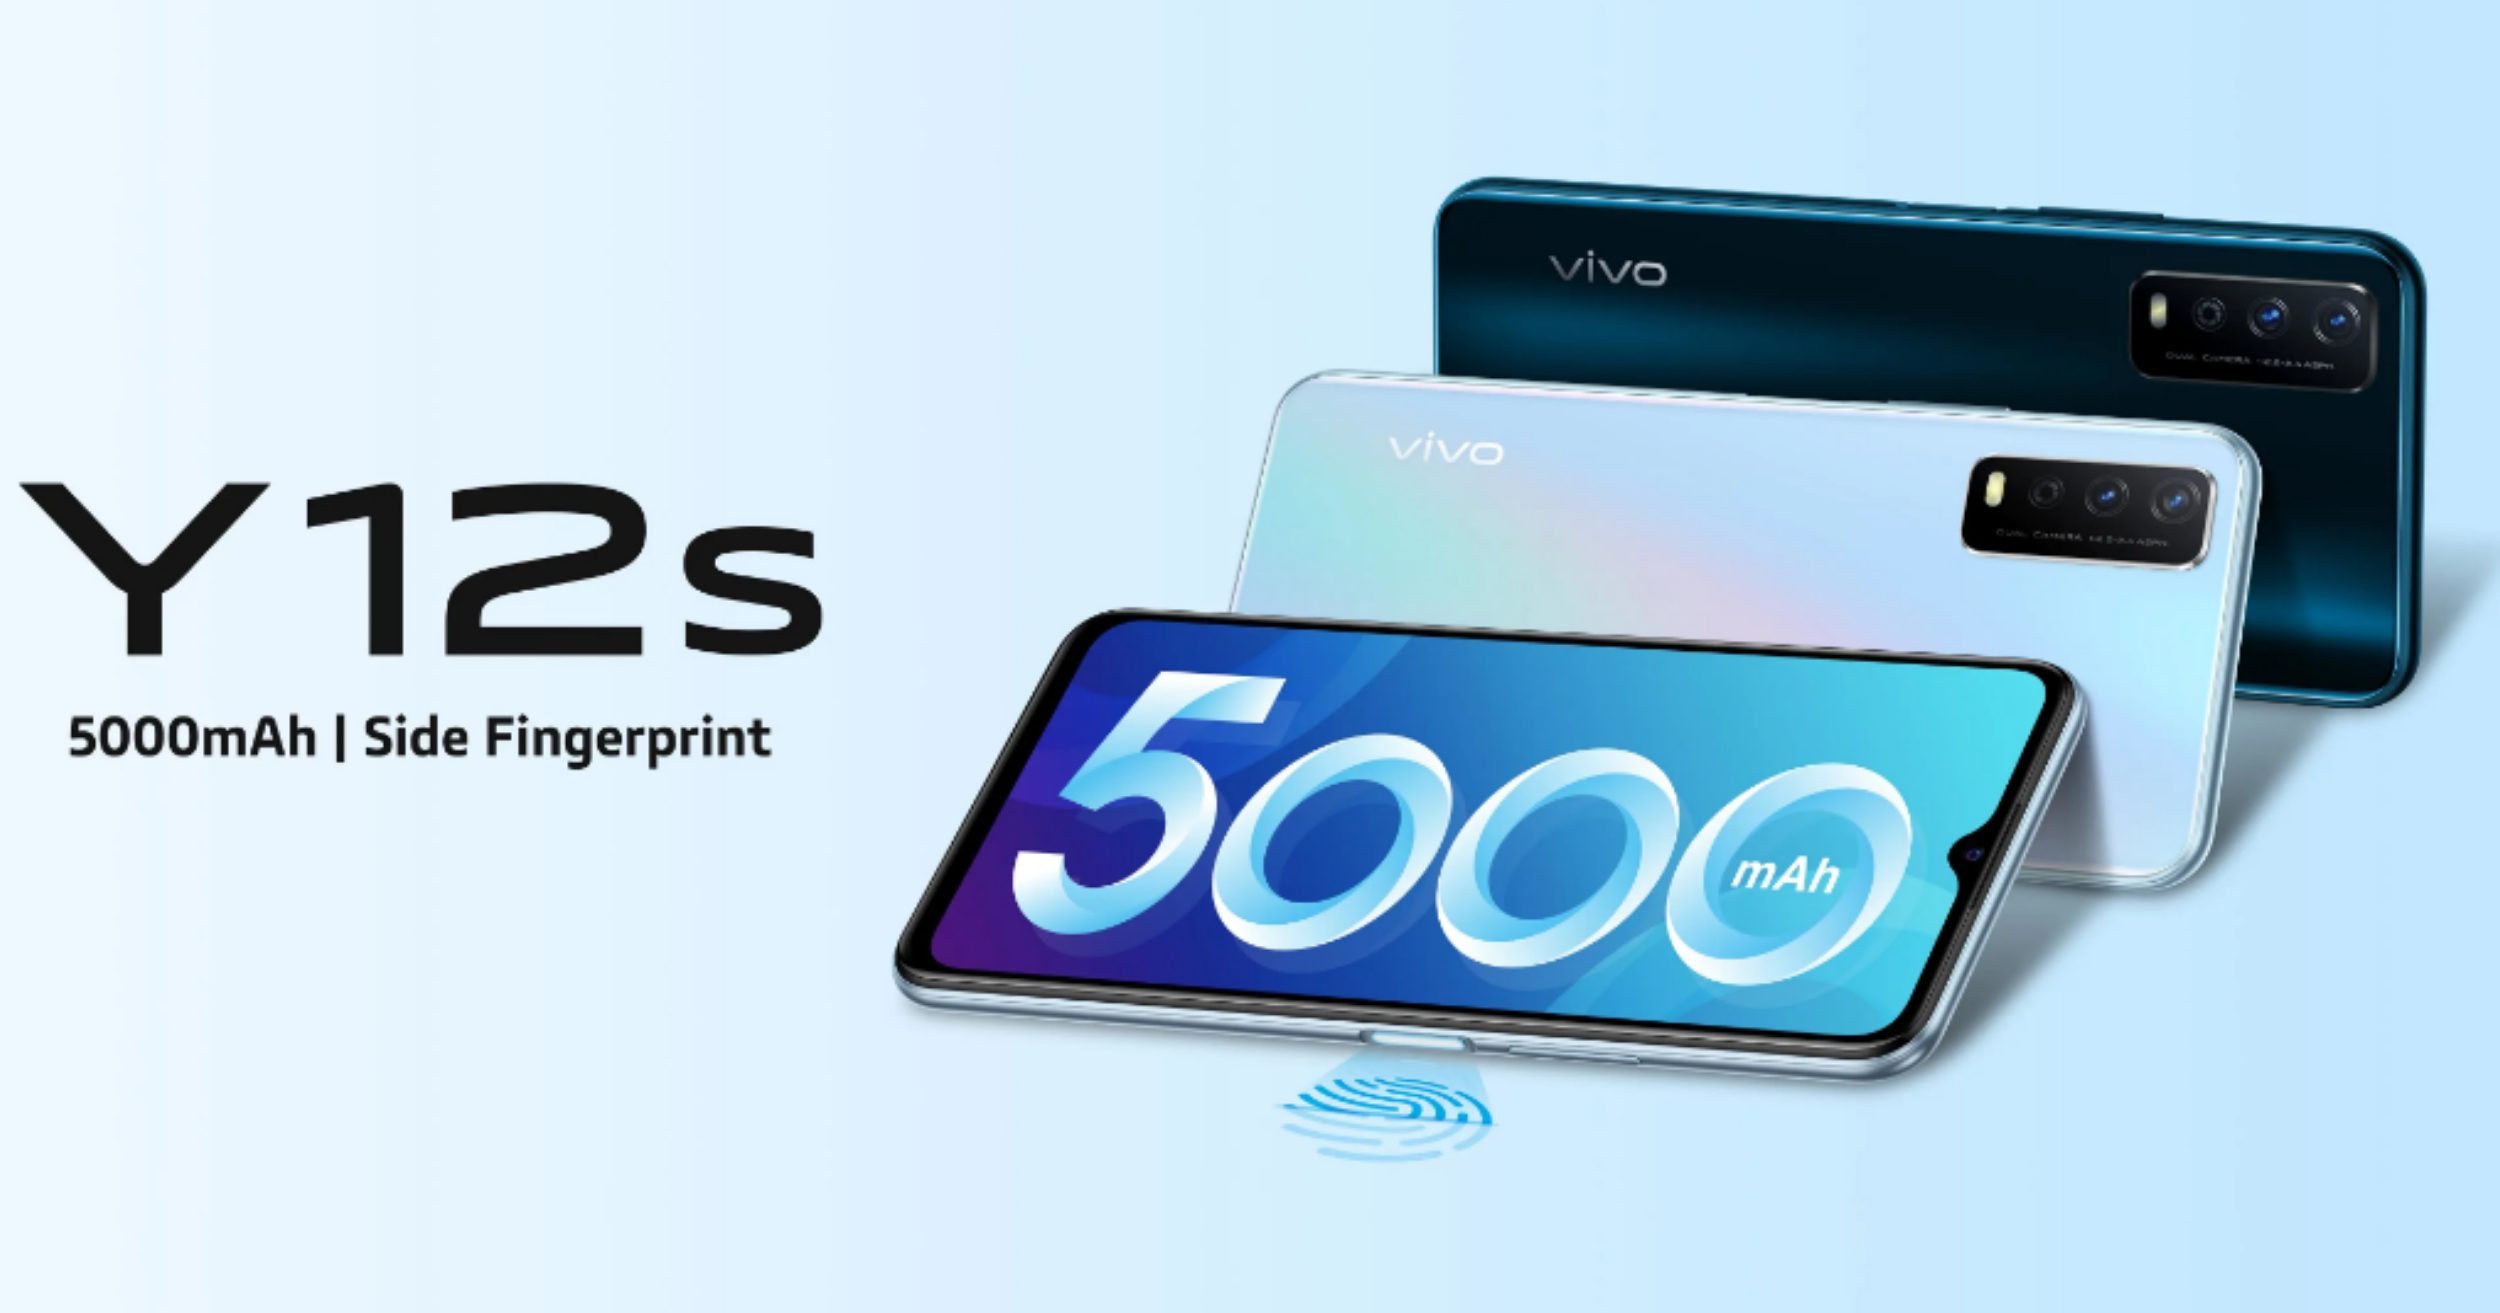 vivo-y12s-official-price-specs-release-date-availability-philippines-2